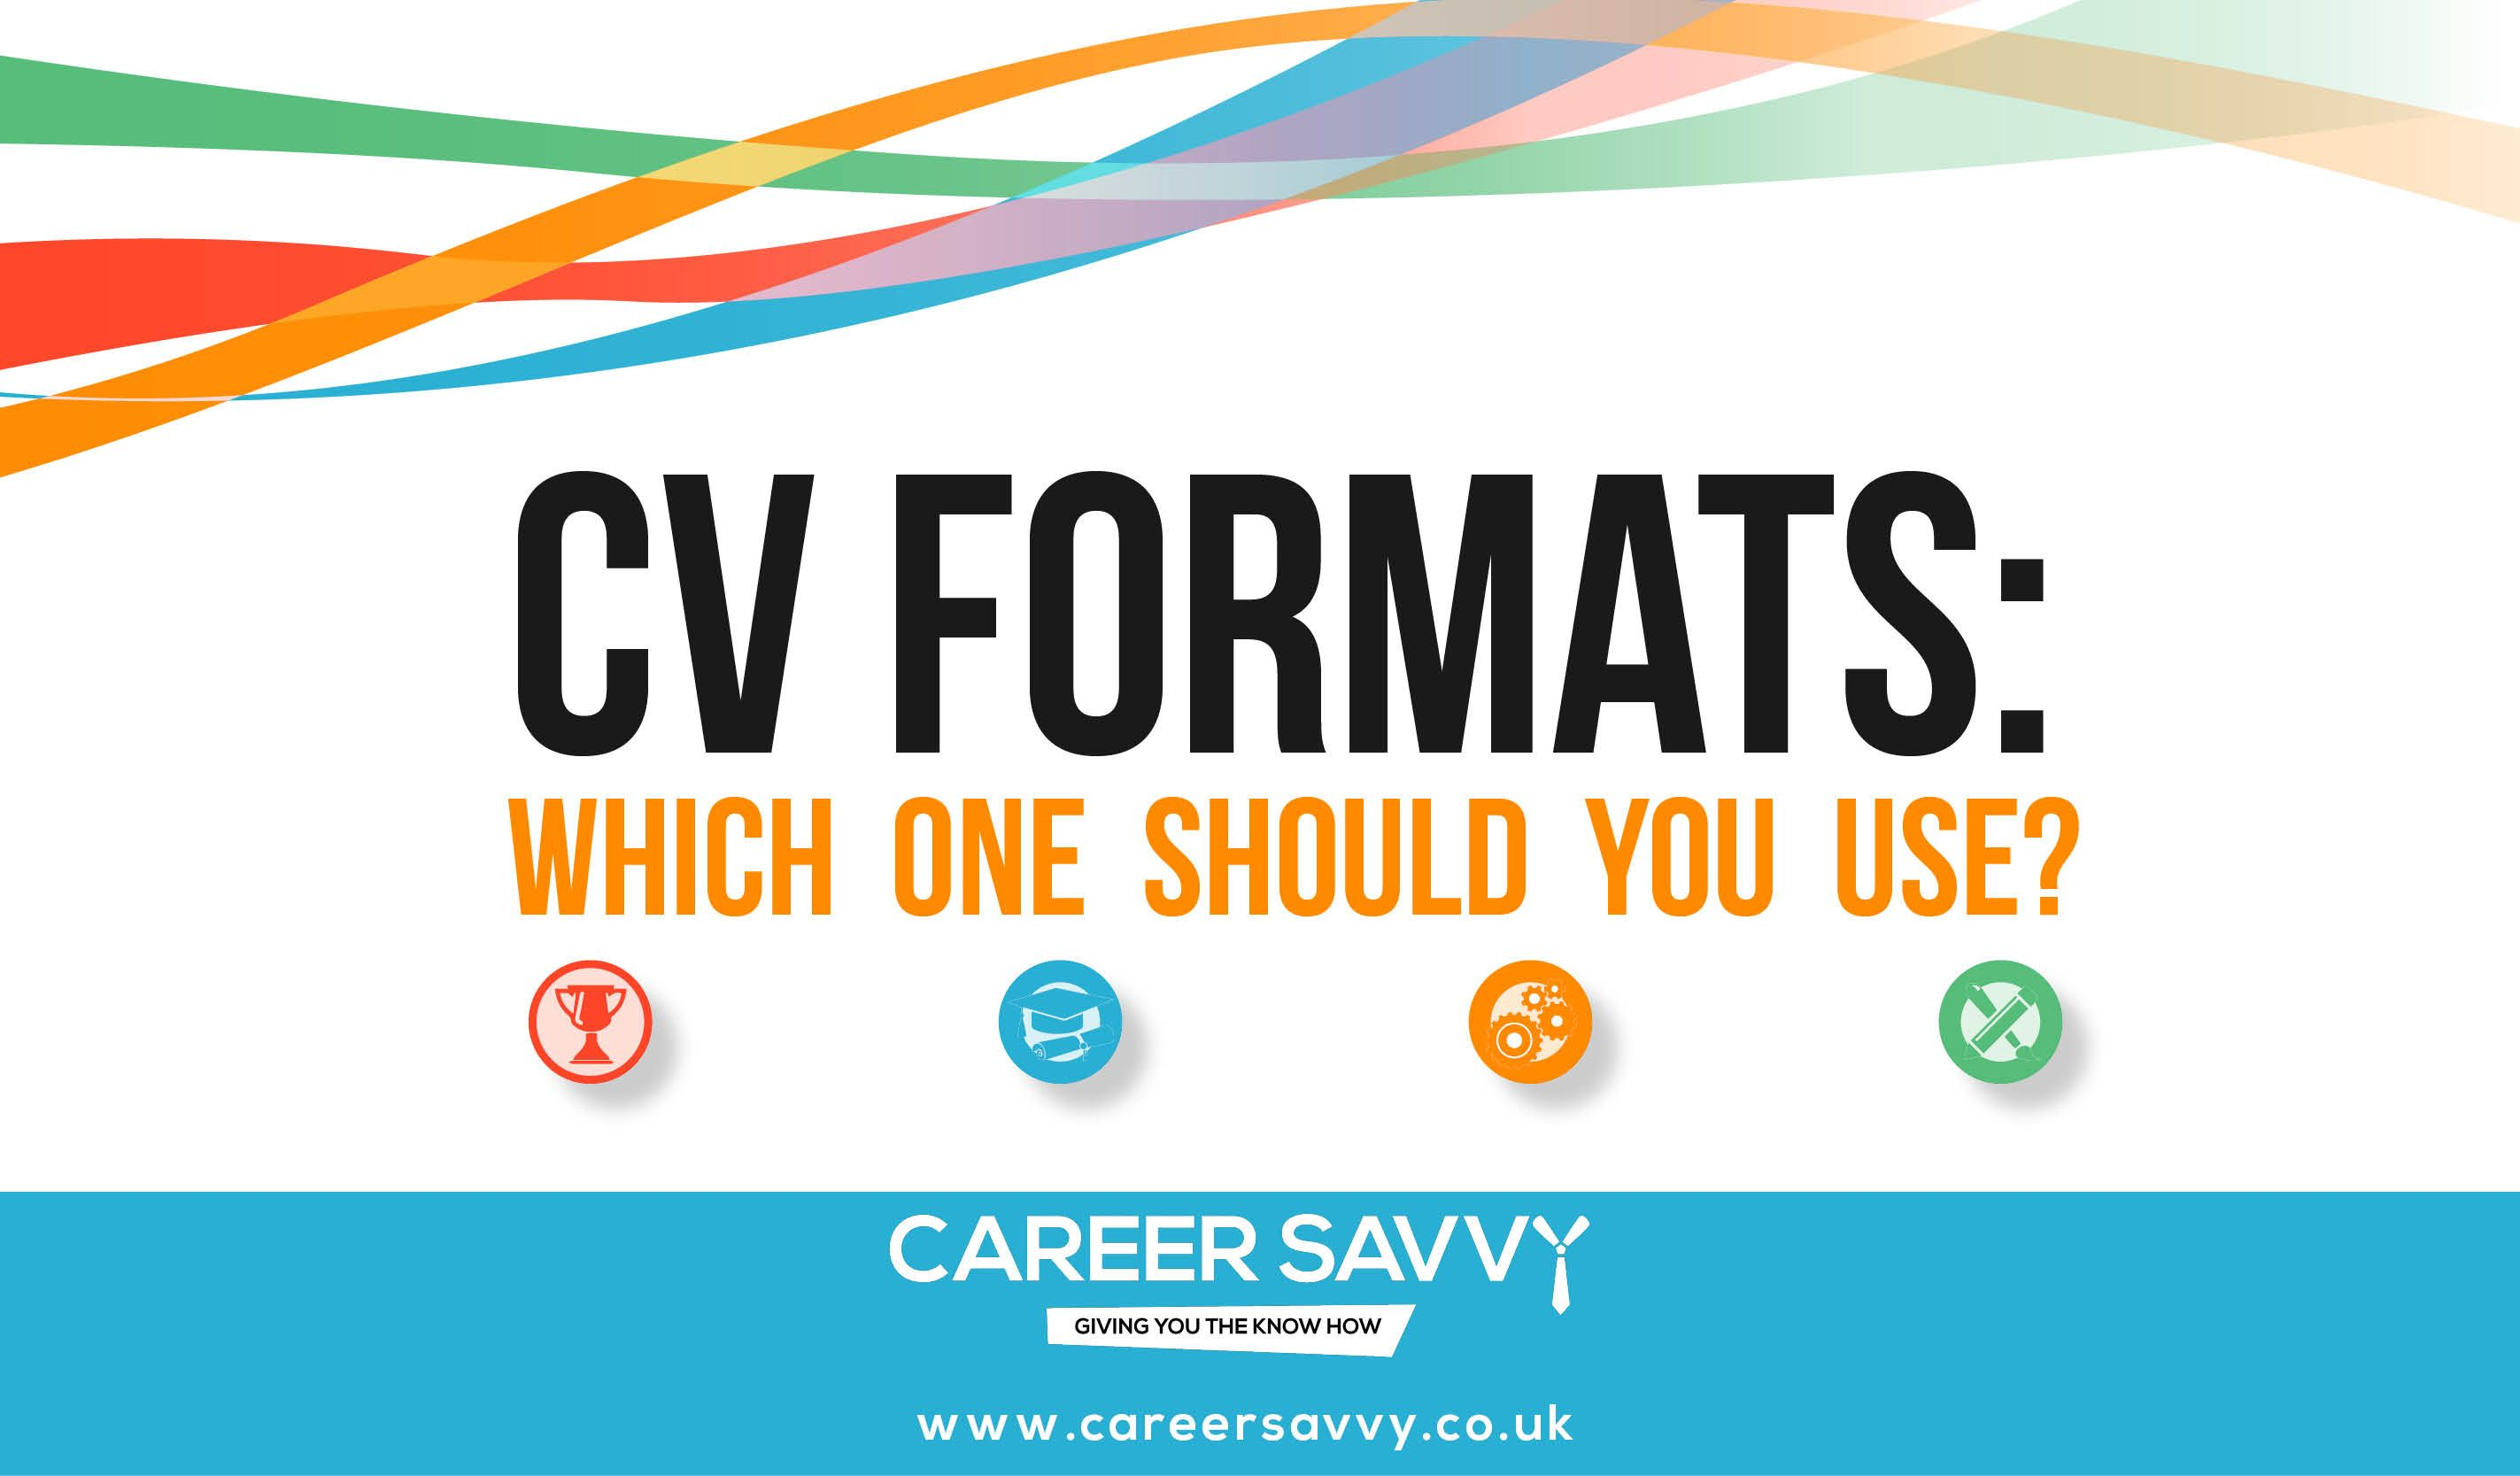 Many jobseekers strive to create the perfect CV, but the